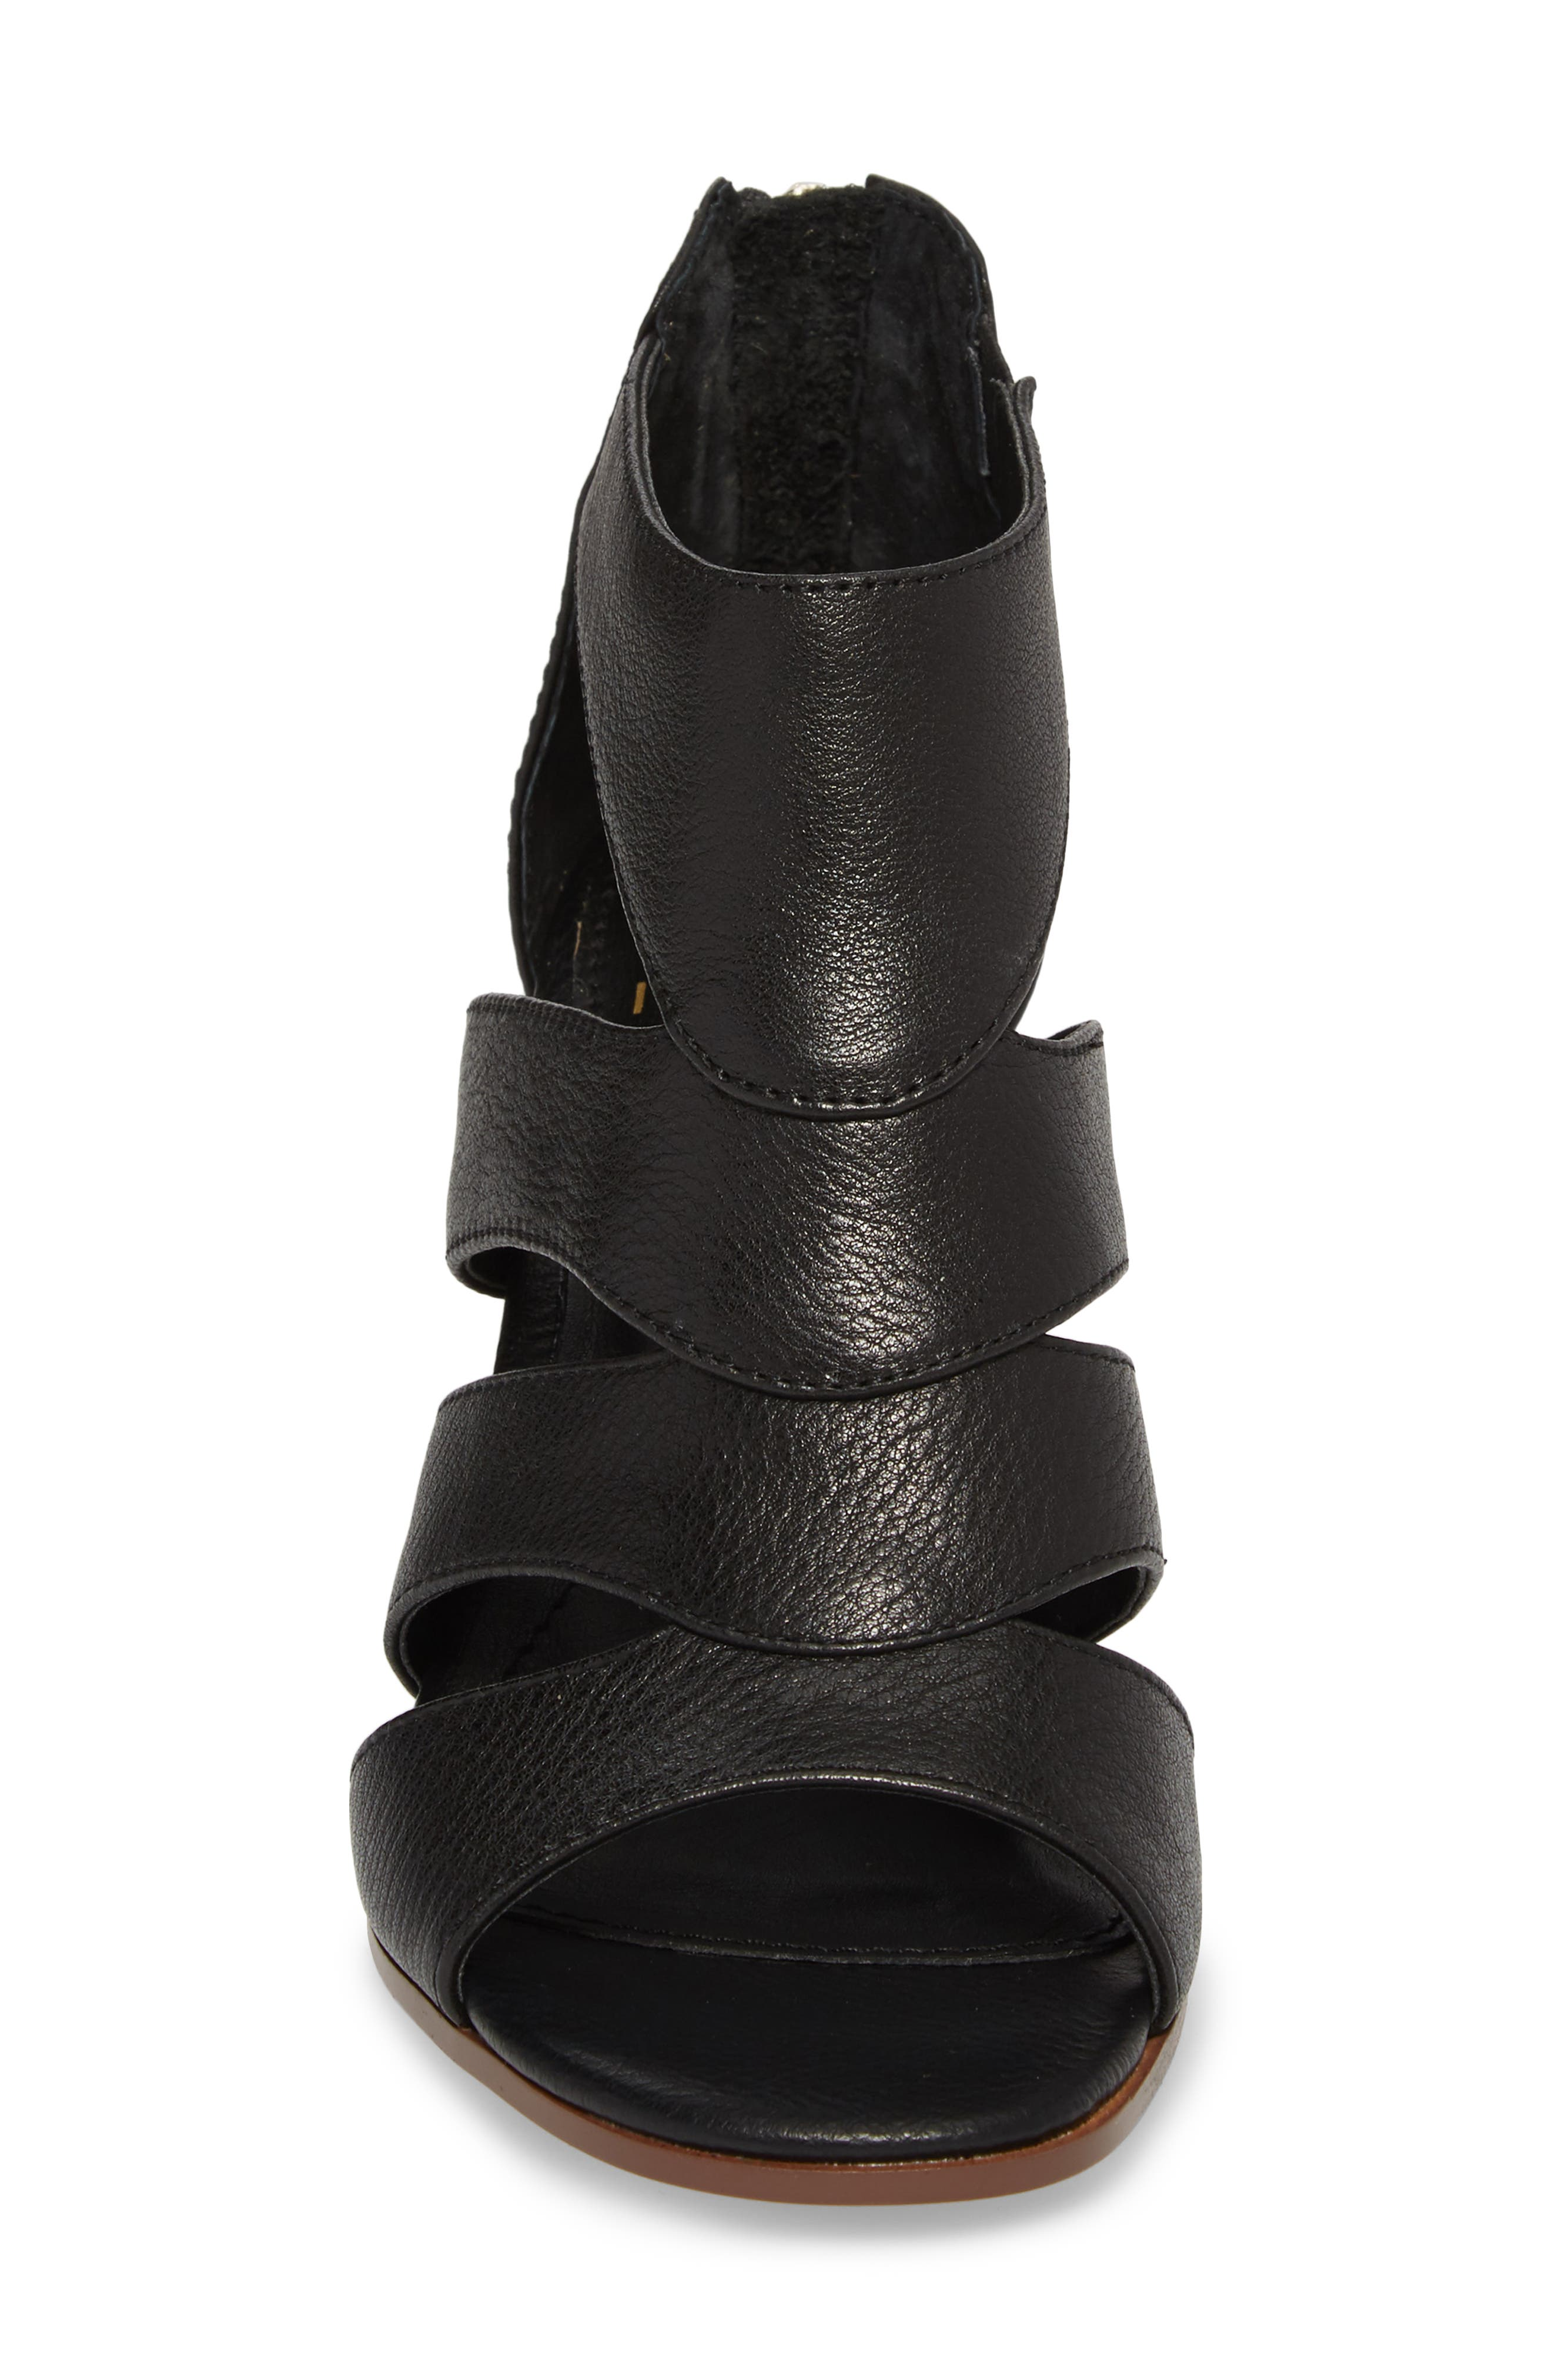 Isola Rona Sandal,                             Alternate thumbnail 4, color,                             BLACK LEATHER